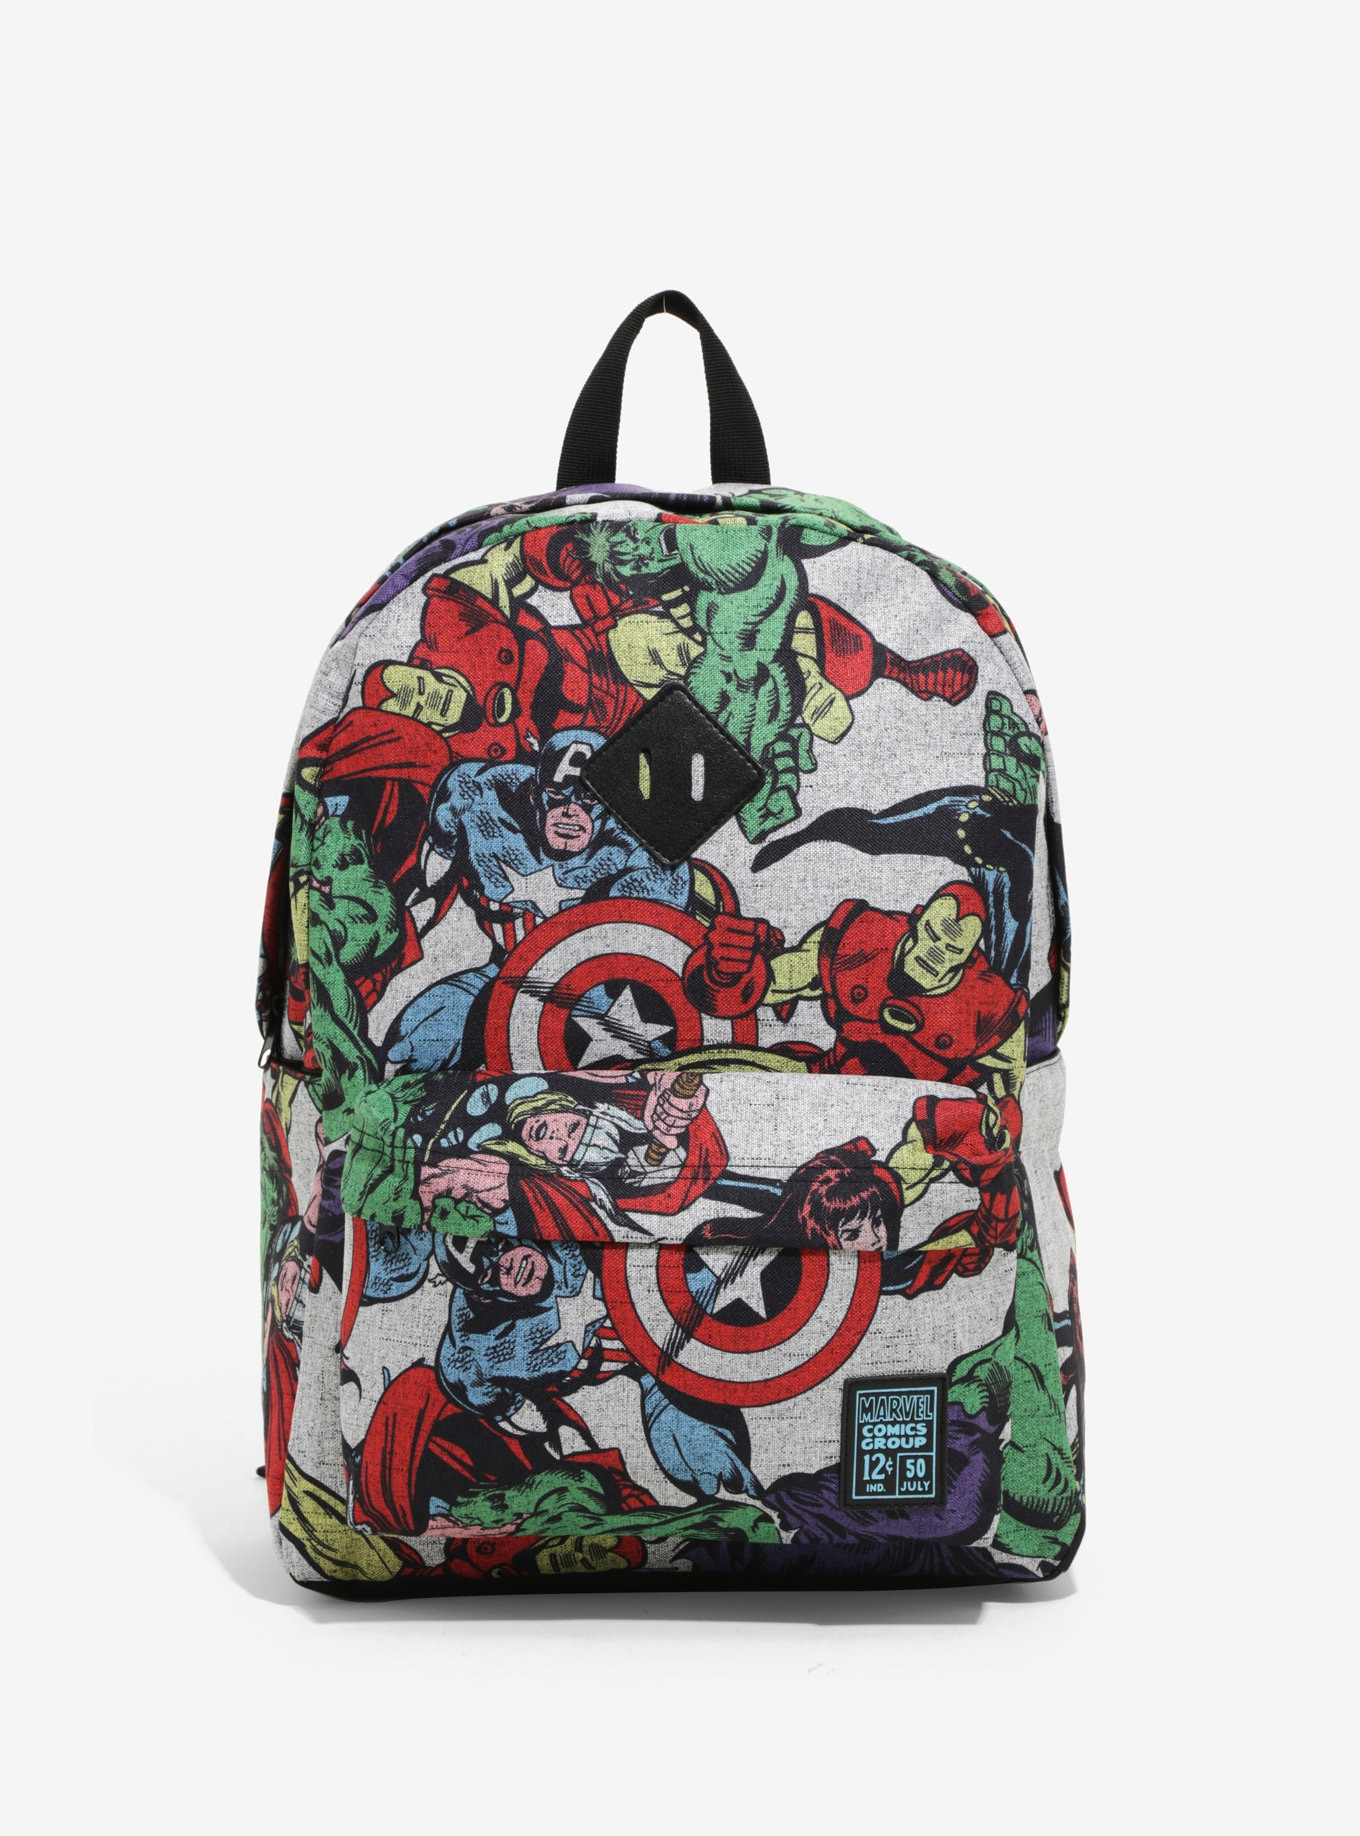 Marvel Avengers Print Backpack Book Bag Hulk, Black Widow, Iron Man, Captain America